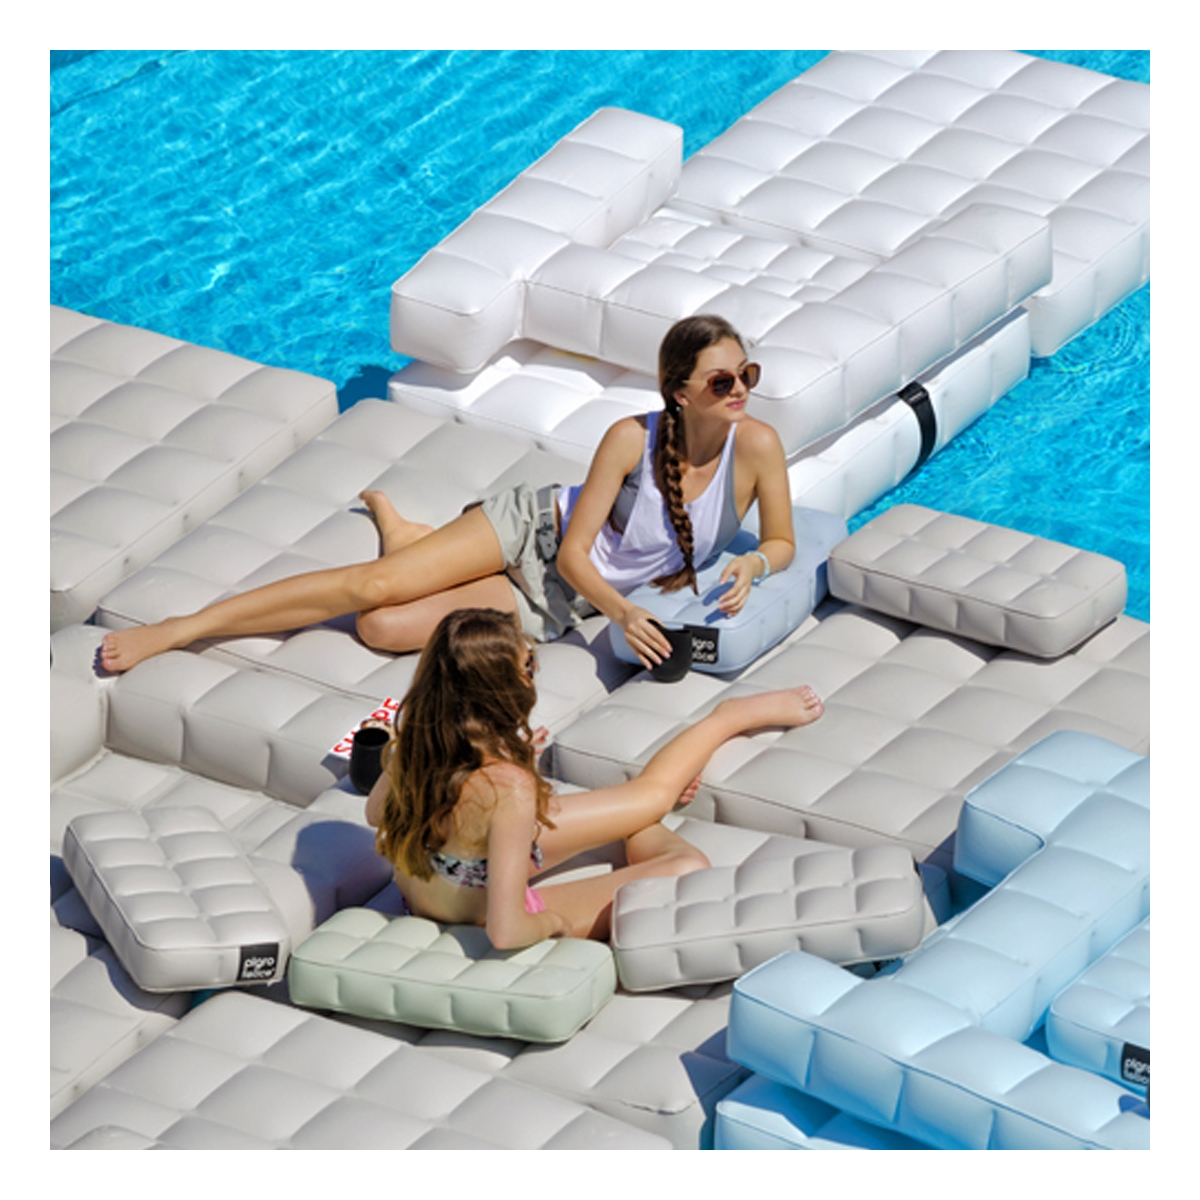 transat gonflable piscine latest jilong u fauteuil. Black Bedroom Furniture Sets. Home Design Ideas